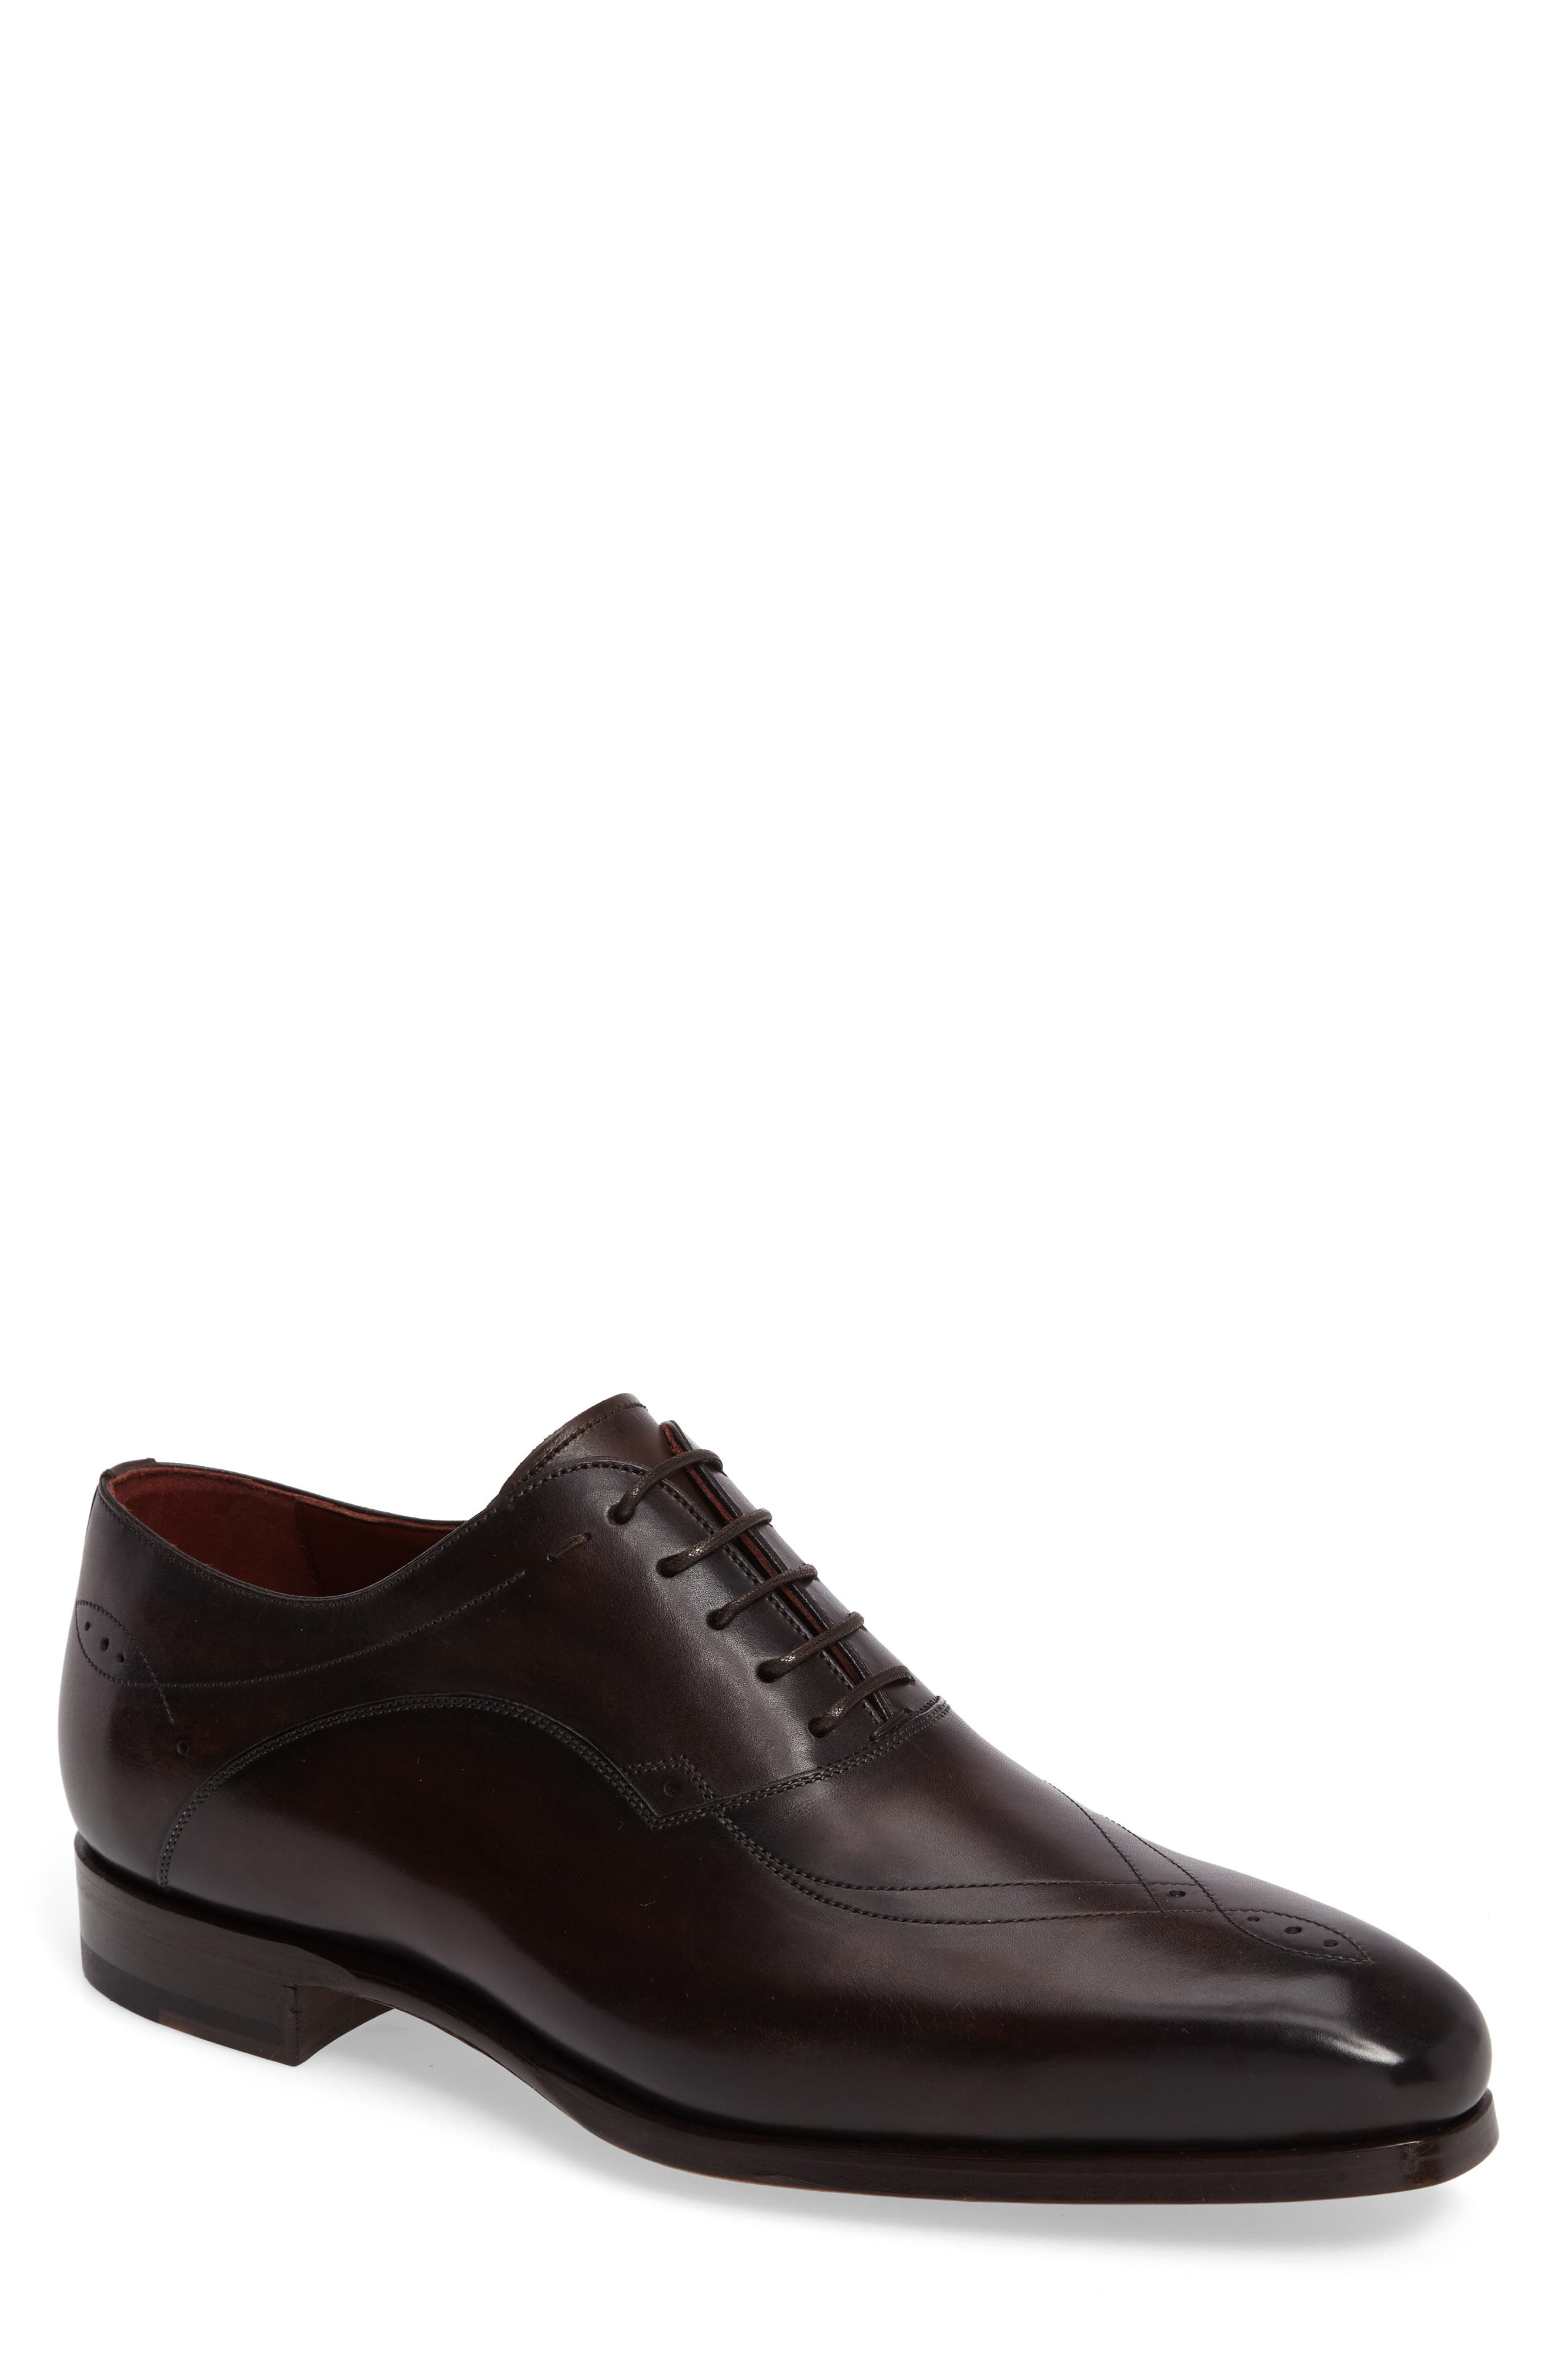 Francisco Plain Toe Oxford,                         Main,                         color, Brown Leather